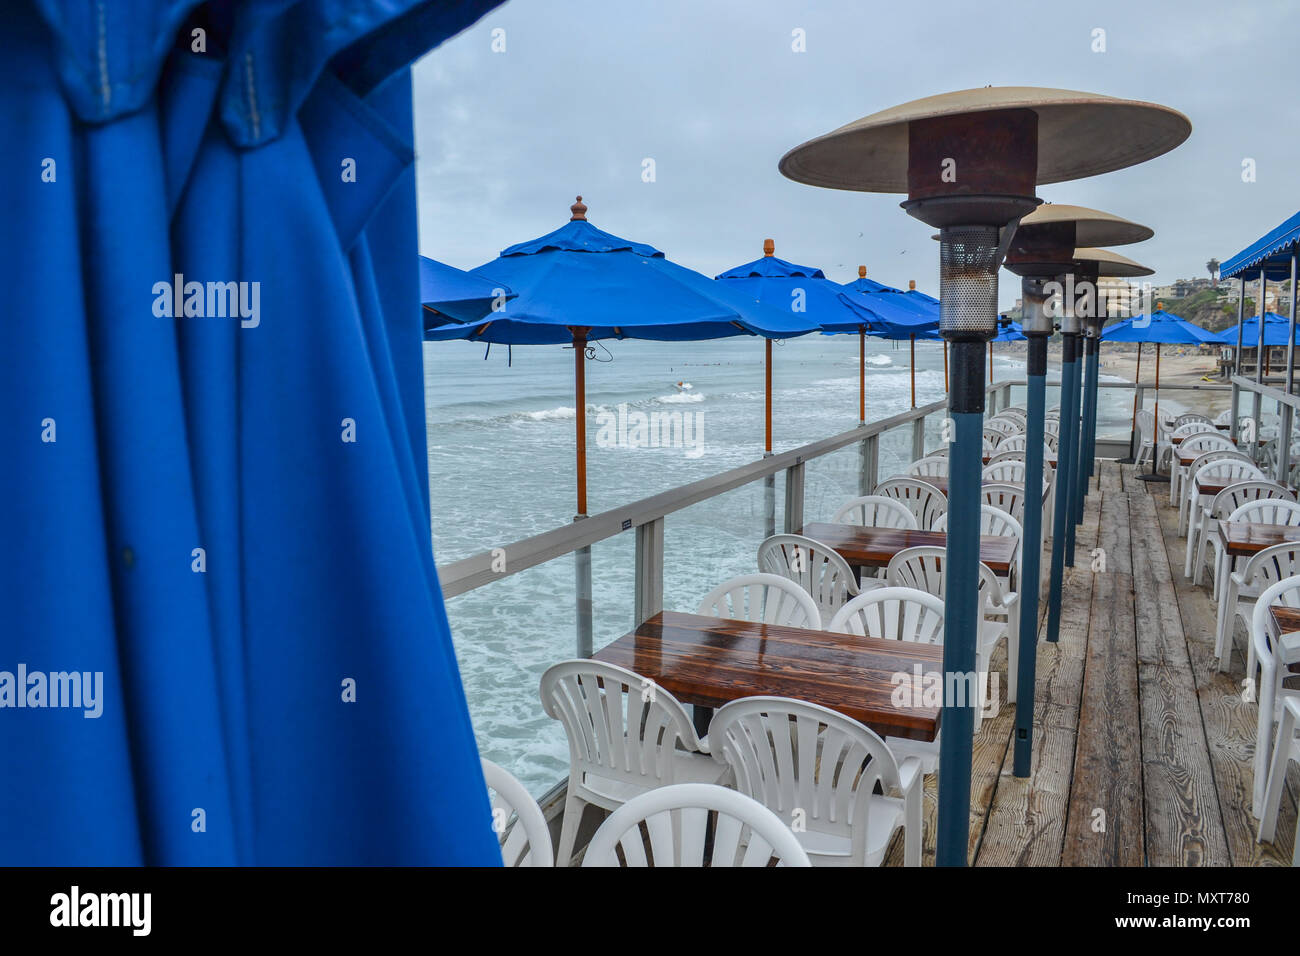 Travel to San Clemente Beach, California on a foggy morning and watch Orange County wake up on this iconic beach destination Stock Photo